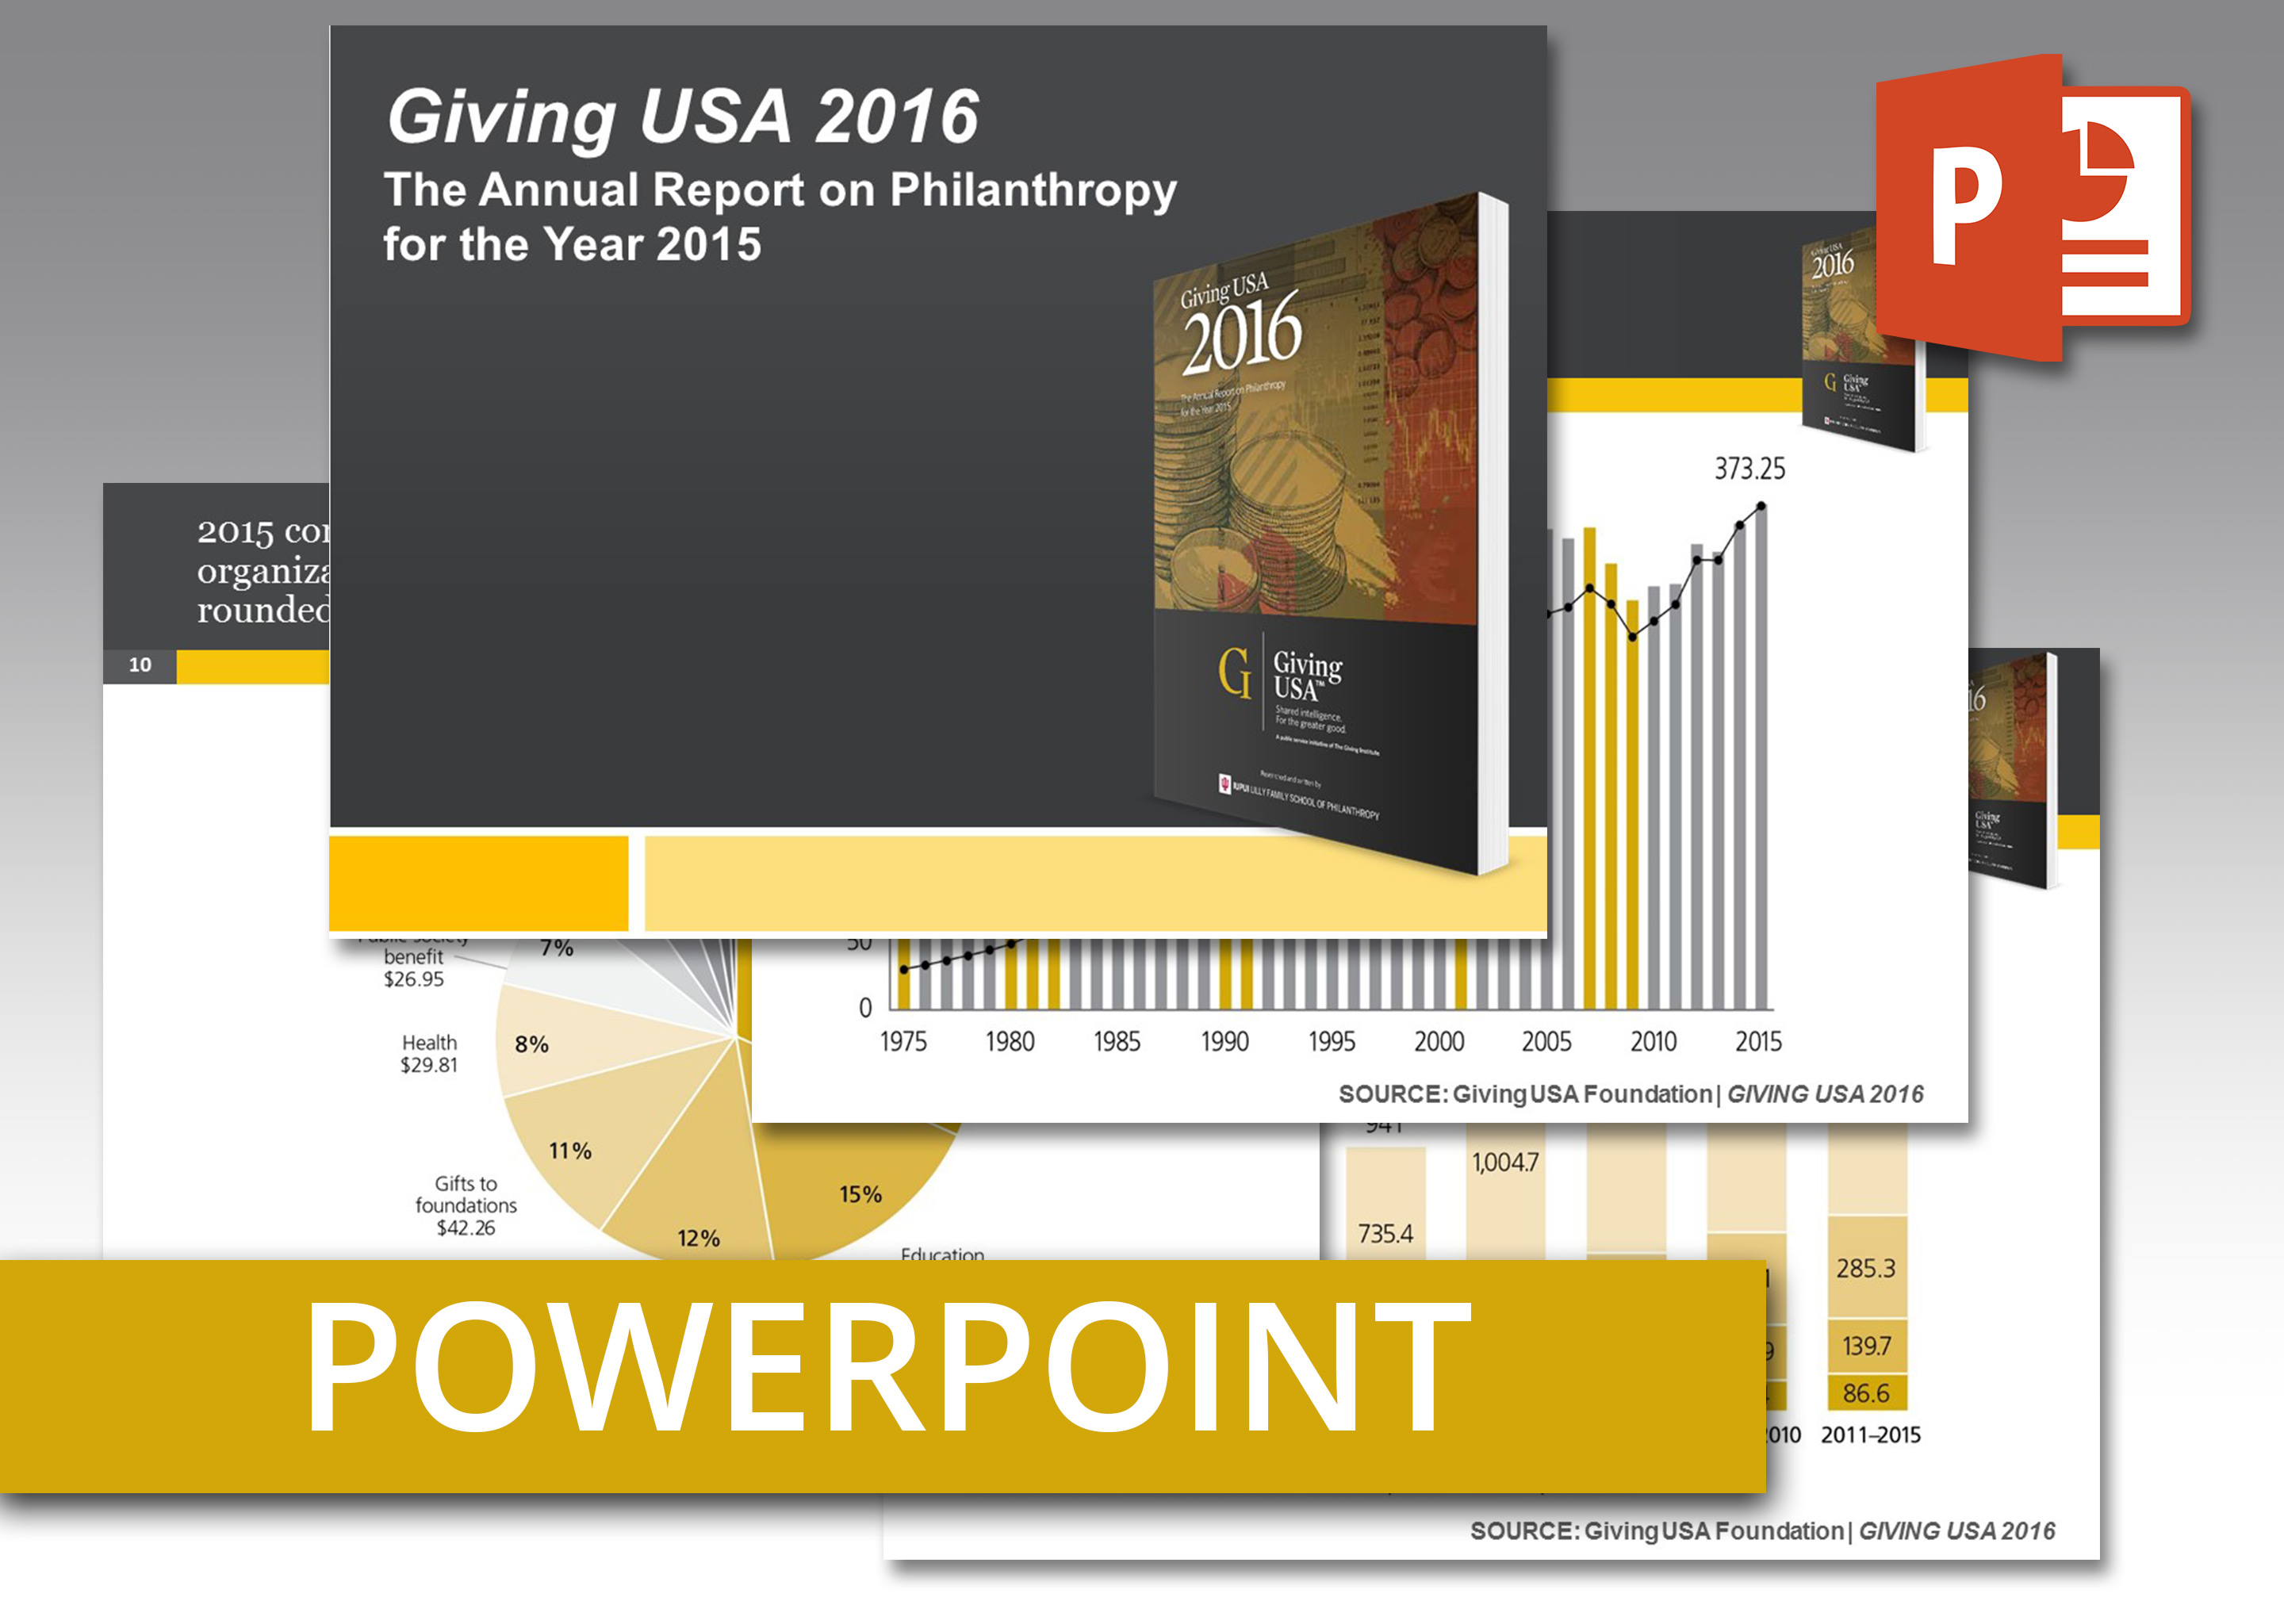 Usdgus  Remarkable Giving Usa  Powerpoint An Easytouse Presentation Of Report  With Luxury Giving Usa  Powerpoint An Easytouse Presentation Of Report Findings Including Talking Points With Amazing Star Background Powerpoint Also Inspirational Powerpoint Presentations With Music In Addition Powerpoint Word Animation And Extension Of Powerpoint As Well As Powerpoint Persuasive Writing Additionally Download Powerpoint Presentation For Free From Givingusaorg With Usdgus  Luxury Giving Usa  Powerpoint An Easytouse Presentation Of Report  With Amazing Giving Usa  Powerpoint An Easytouse Presentation Of Report Findings Including Talking Points And Remarkable Star Background Powerpoint Also Inspirational Powerpoint Presentations With Music In Addition Powerpoint Word Animation From Givingusaorg